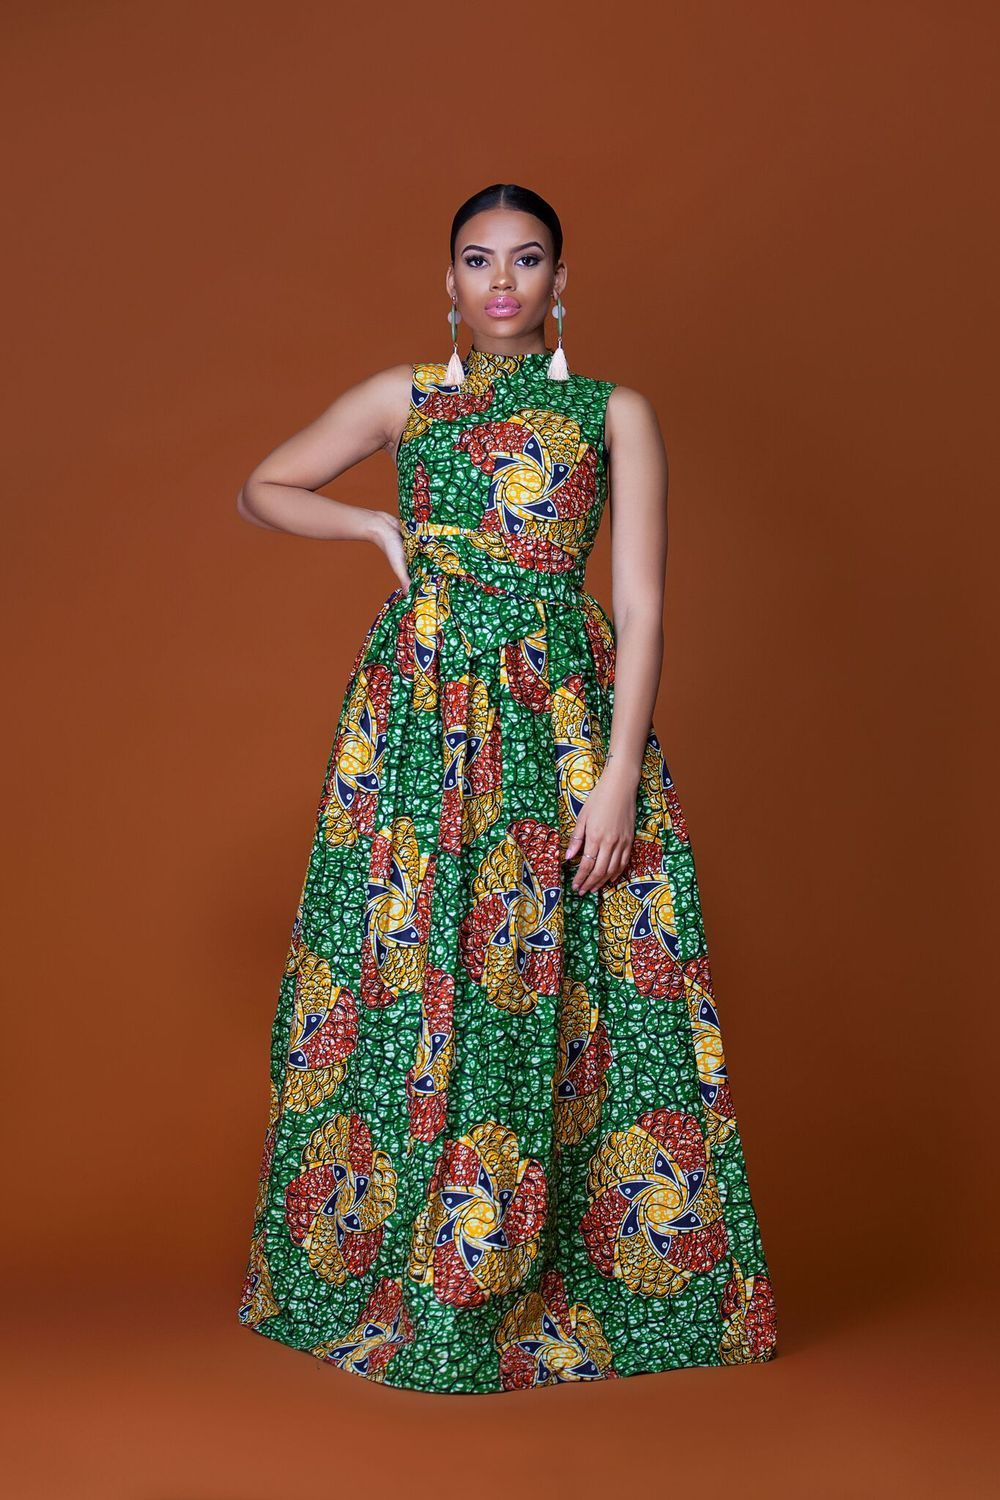 African print dresses for weddings  Shop online here africanfashionu for ALL yo